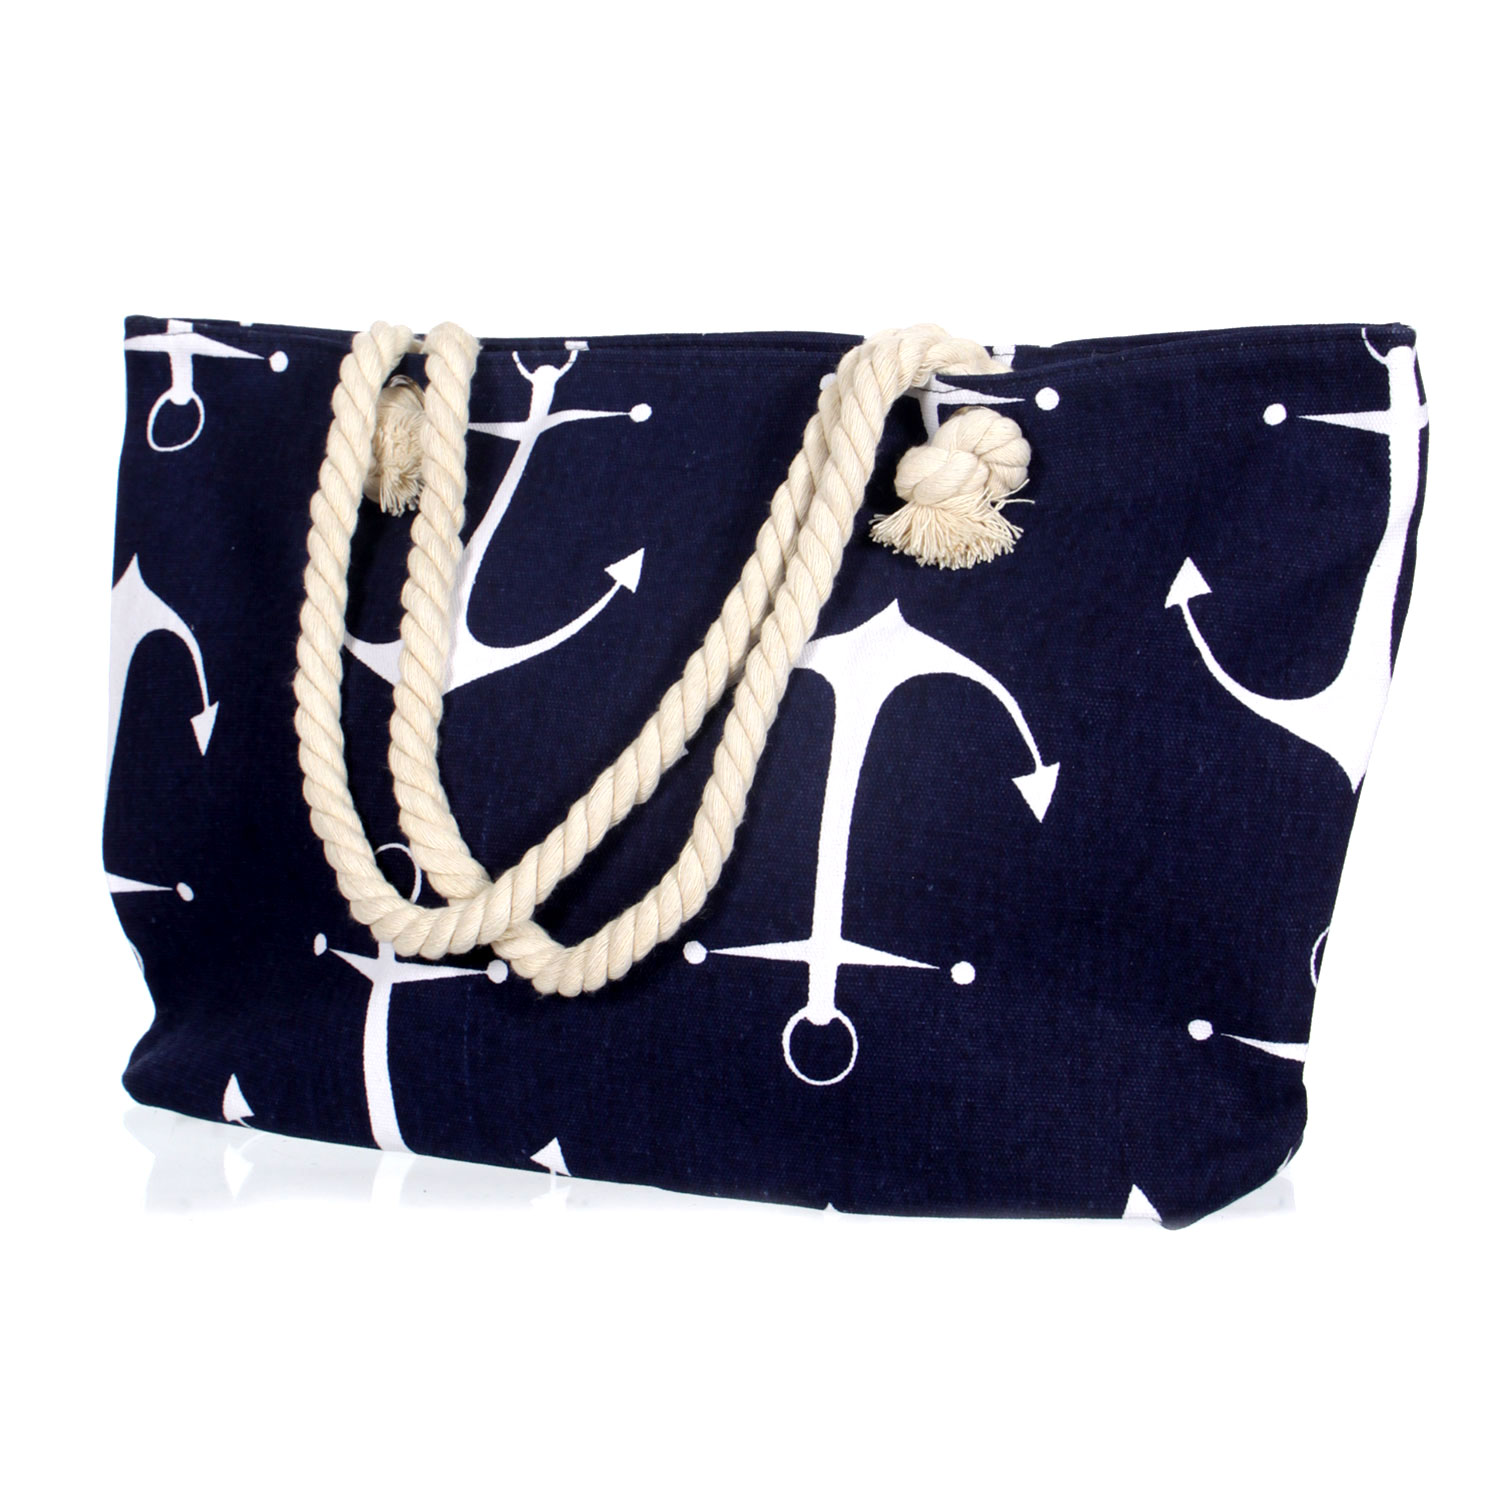 ''Large anchors canvas BEACH BAG (21 X 6 X 12'''')''